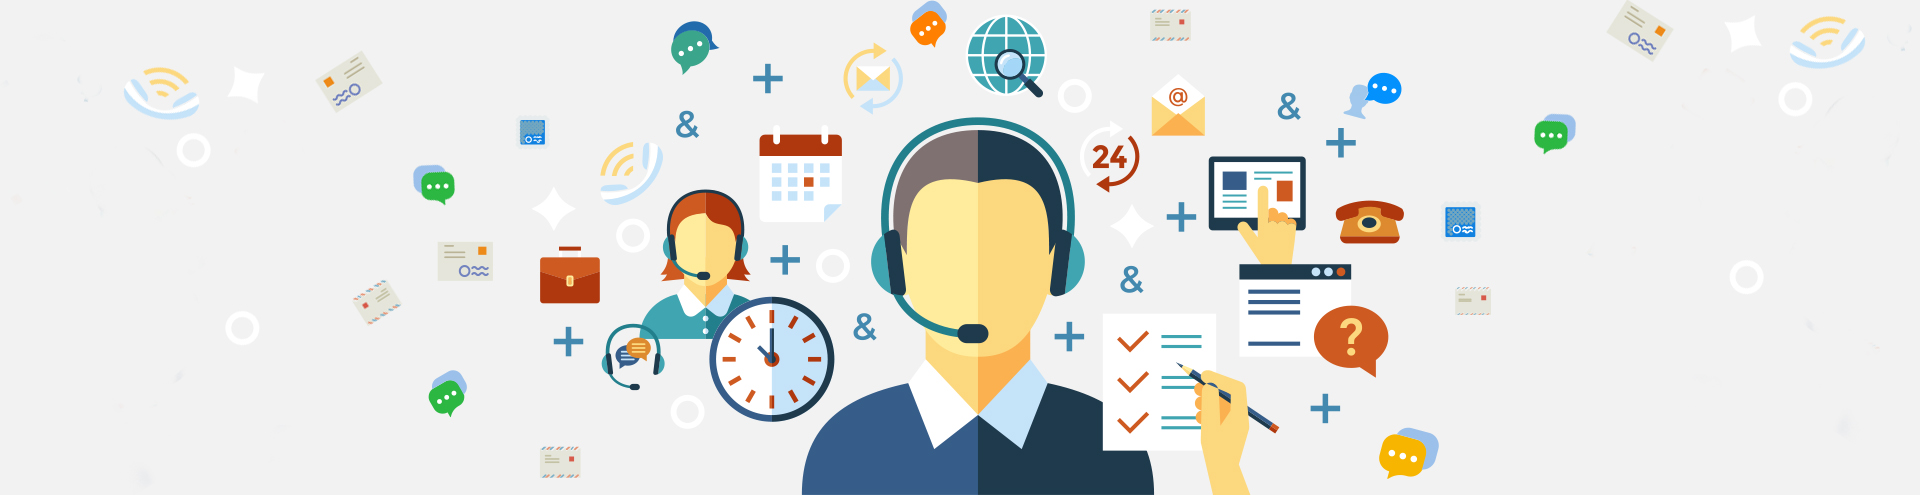 8 Ways Your Small Business Can Get More Customer Calls